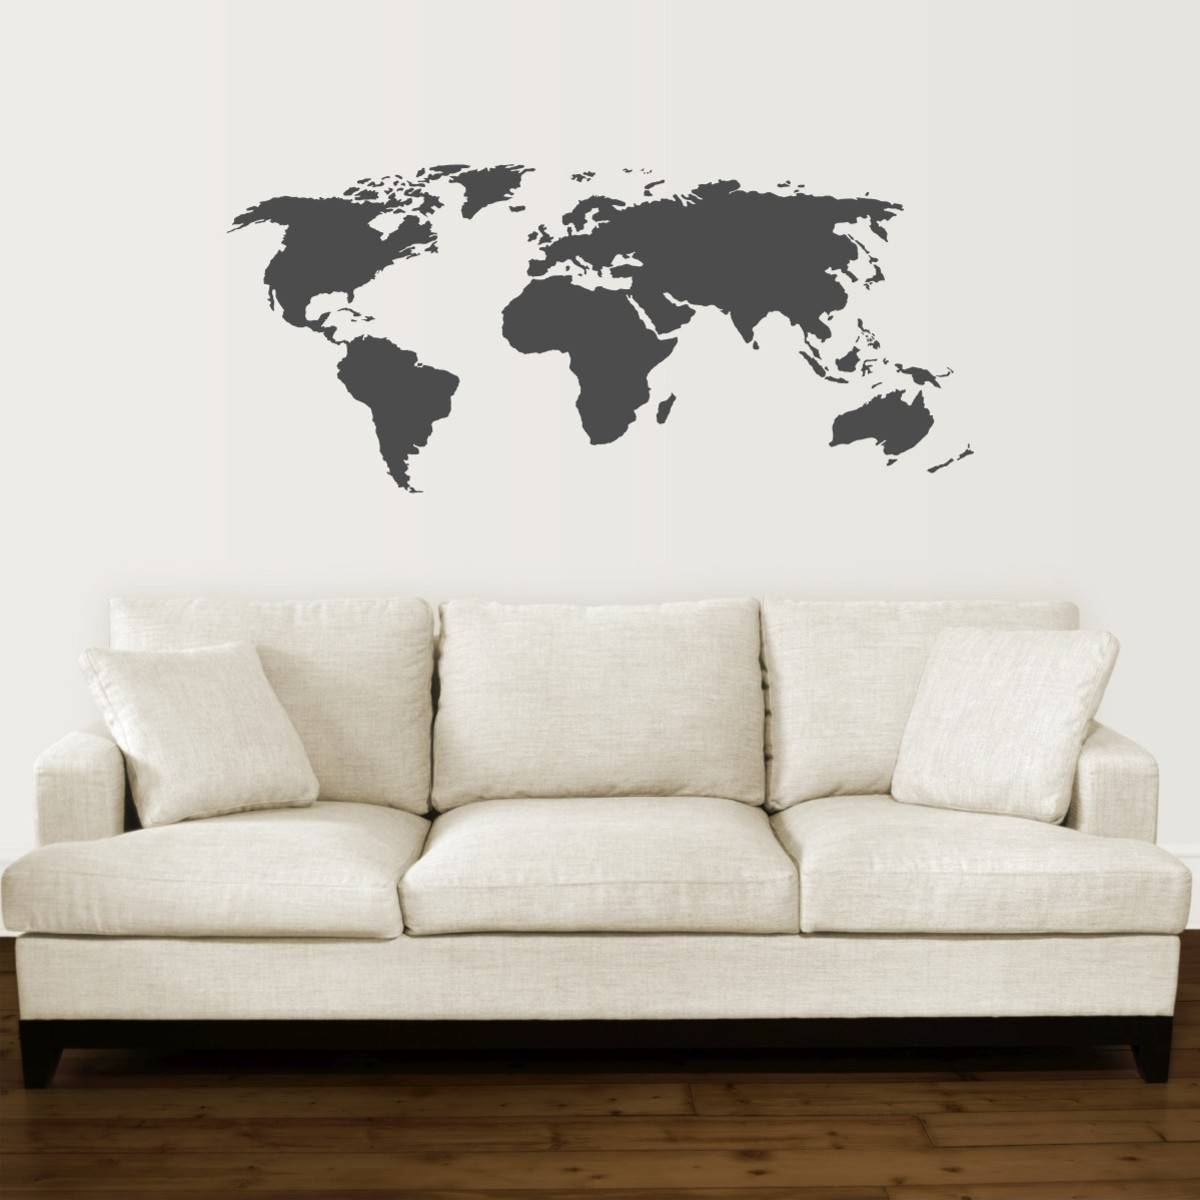 World Map Wall Quotes™ Wall Art Decal | Wallquotes Intended For 2017 Framed Map Wall Art (View 20 of 20)